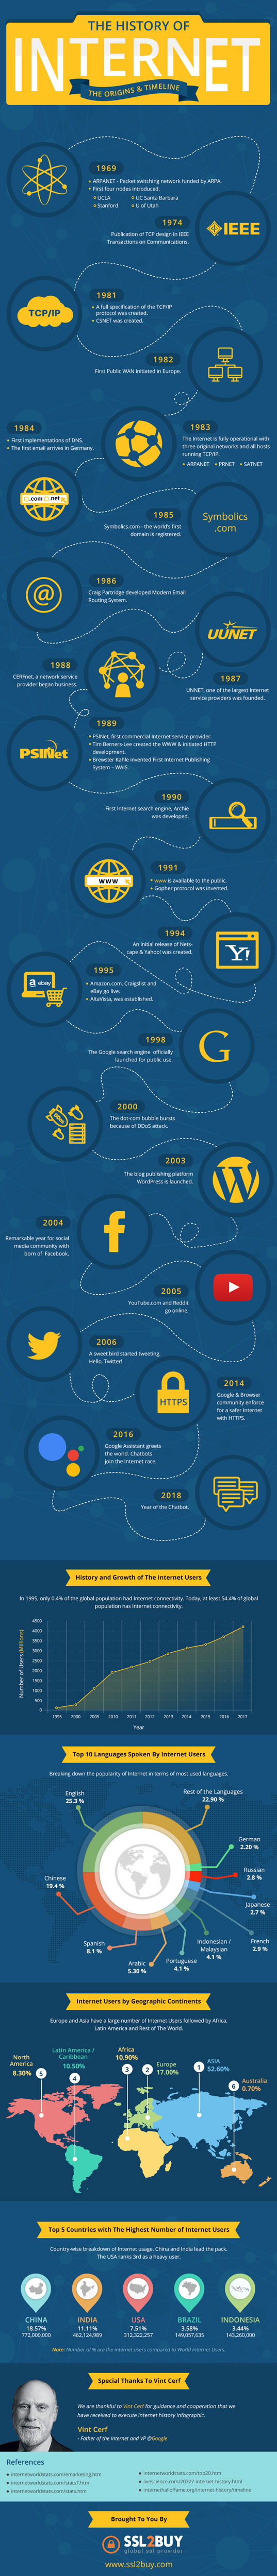 Infographic: the history of the internet | Creative Bloq